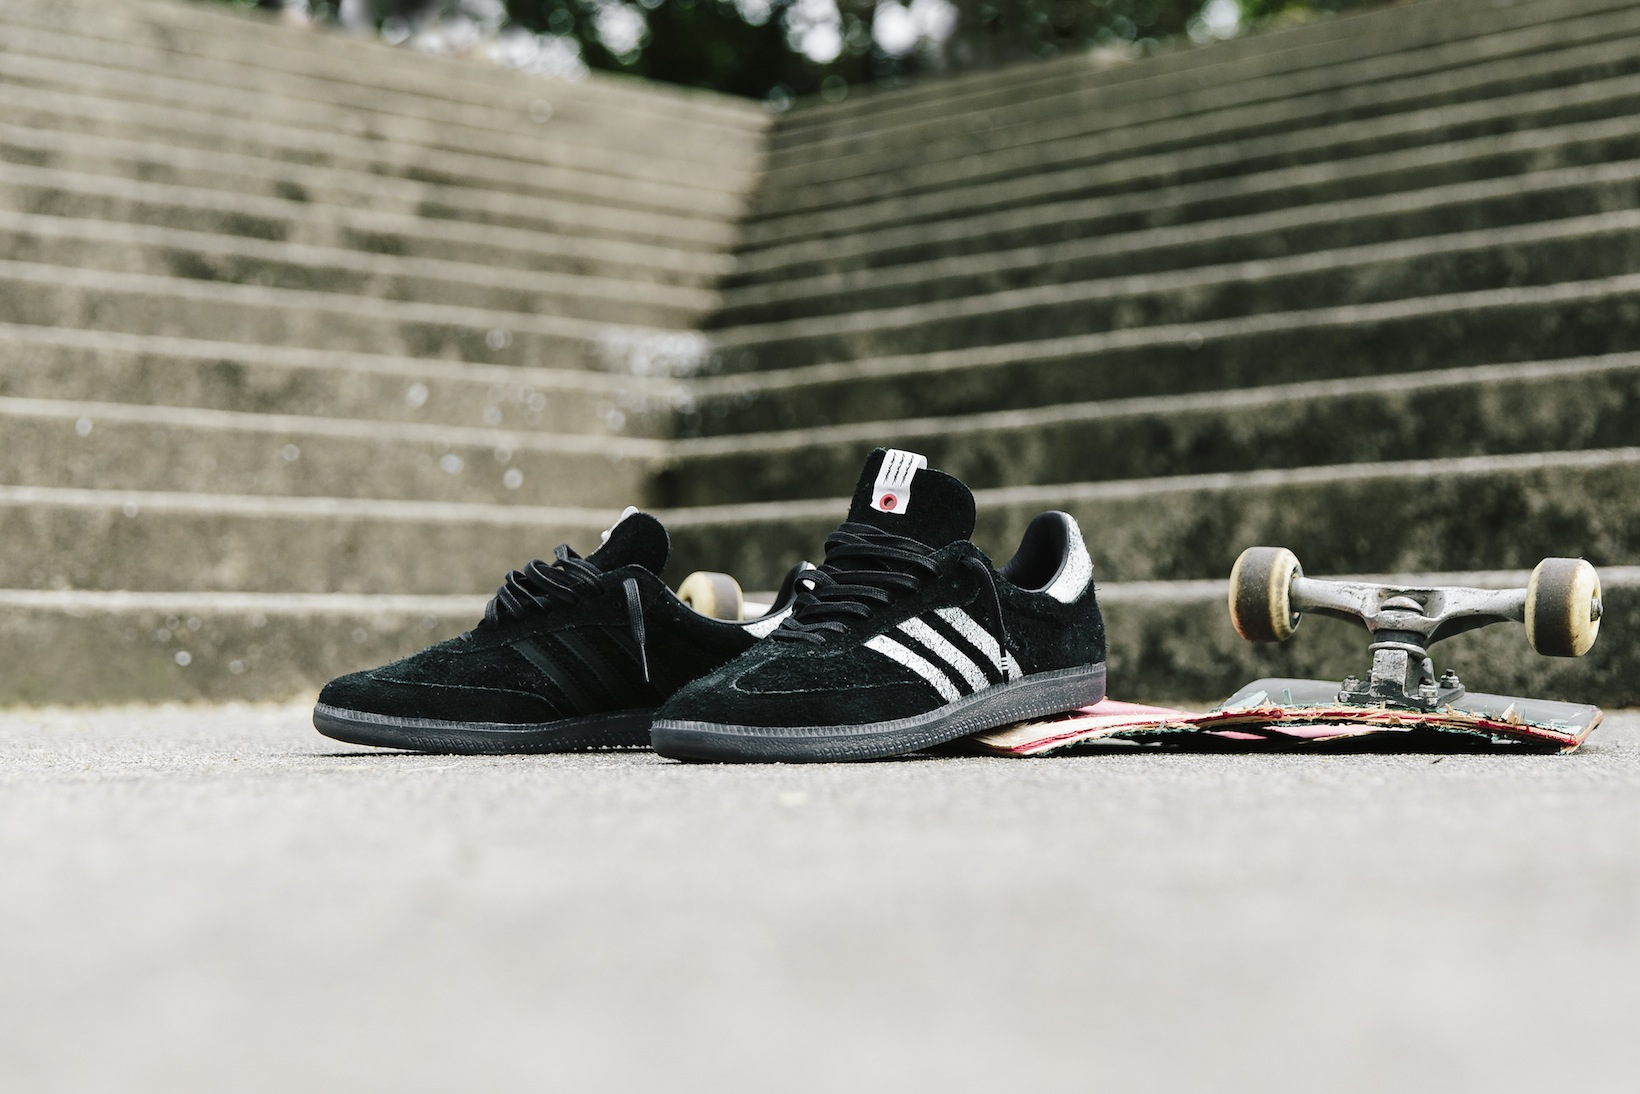 89b2e1791a58d Livestock Joins Forces With adidas Consortium for the Samba and Pure BOOST  ZG